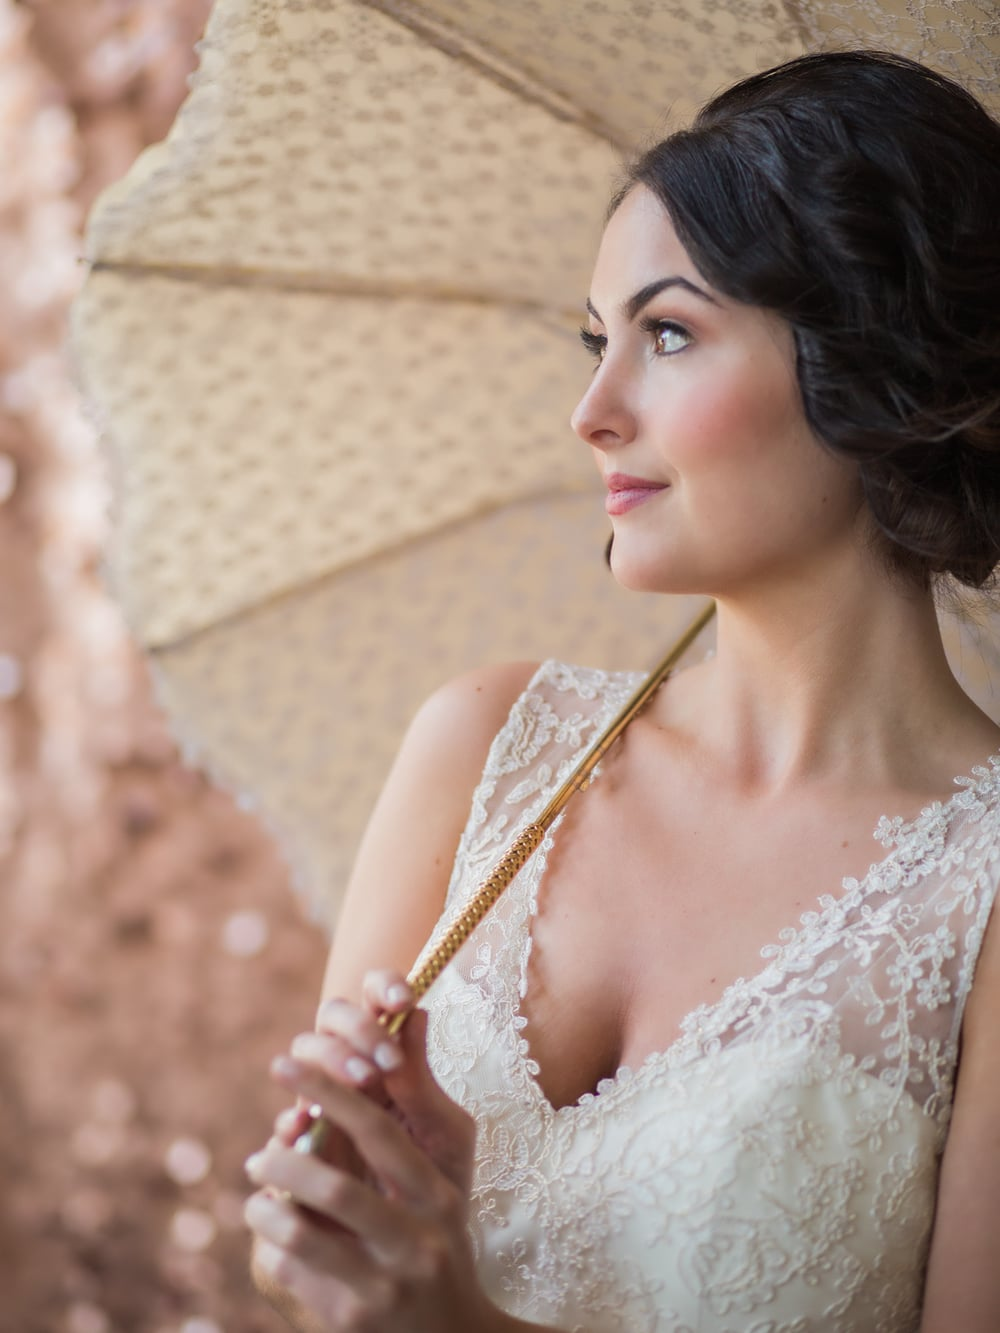 Bella Umbrella Vintage Umbrellas for Rent | Alante Photography | Seattle Wedding Planning